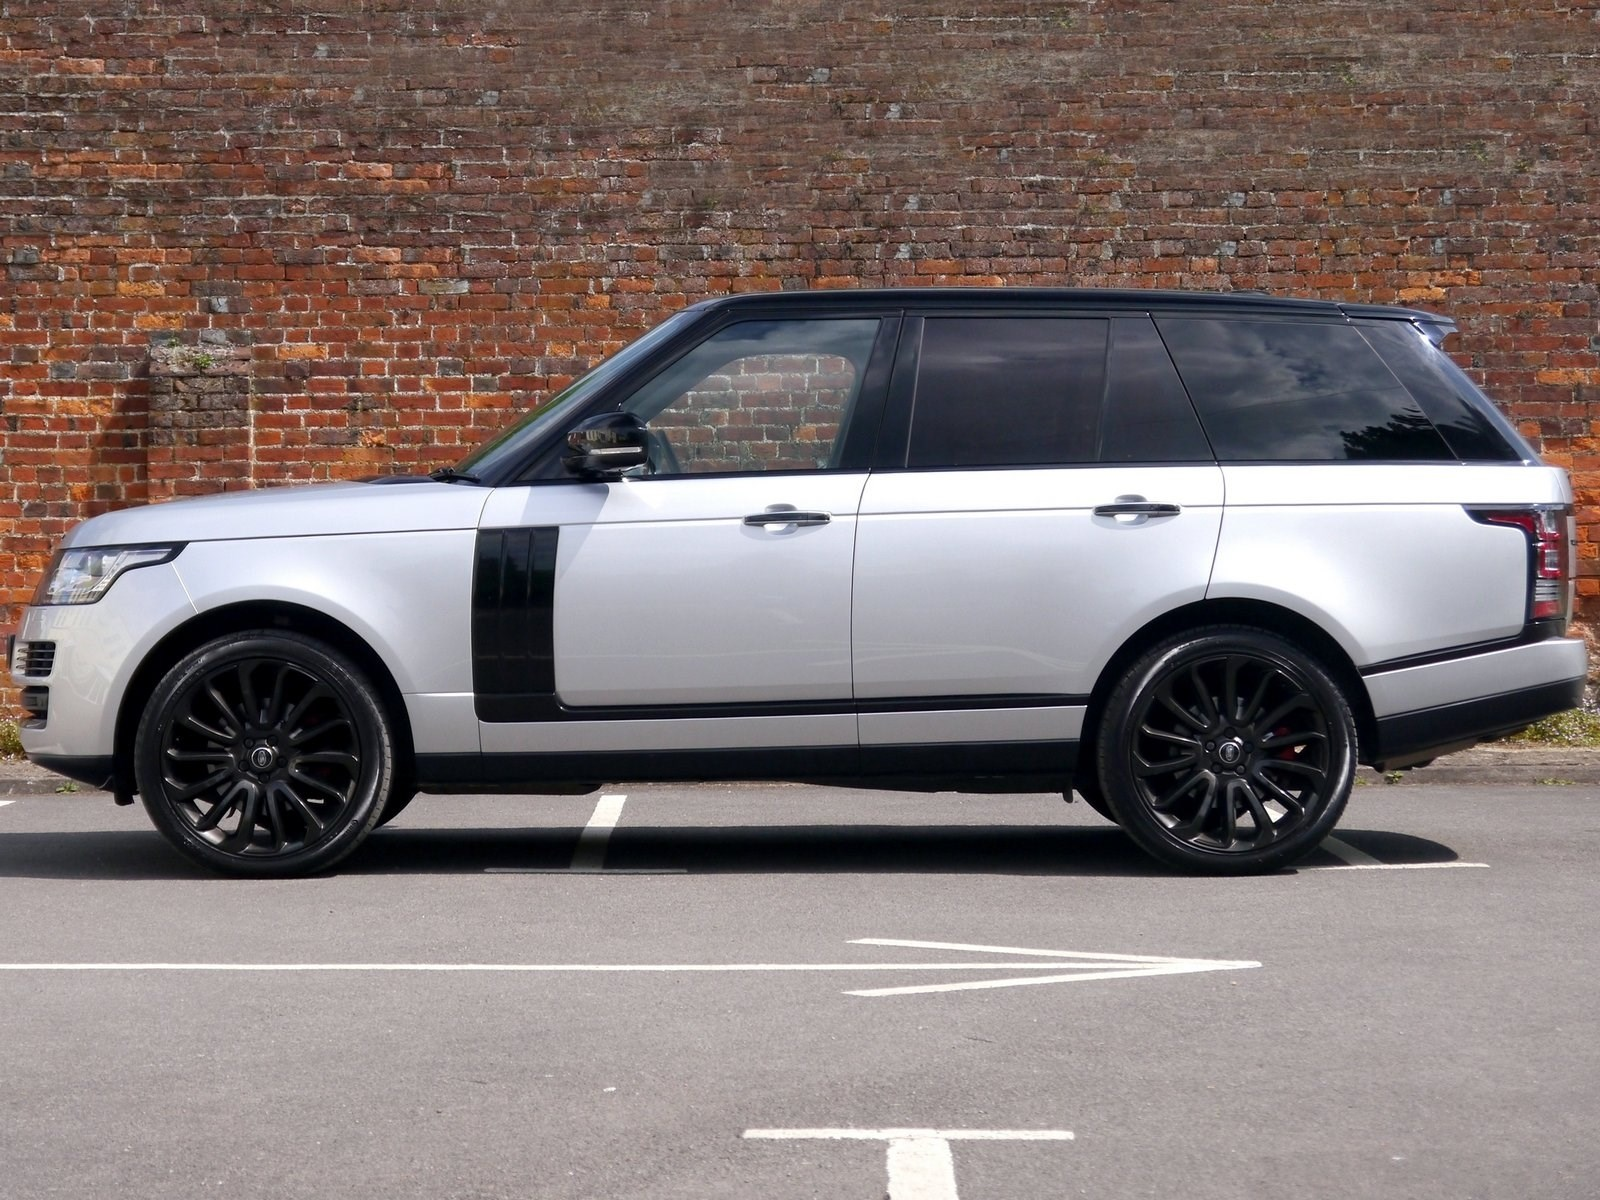 land rover range rover vogue se black pack 22 39 39 alloys contrasting roof for sale. Black Bedroom Furniture Sets. Home Design Ideas